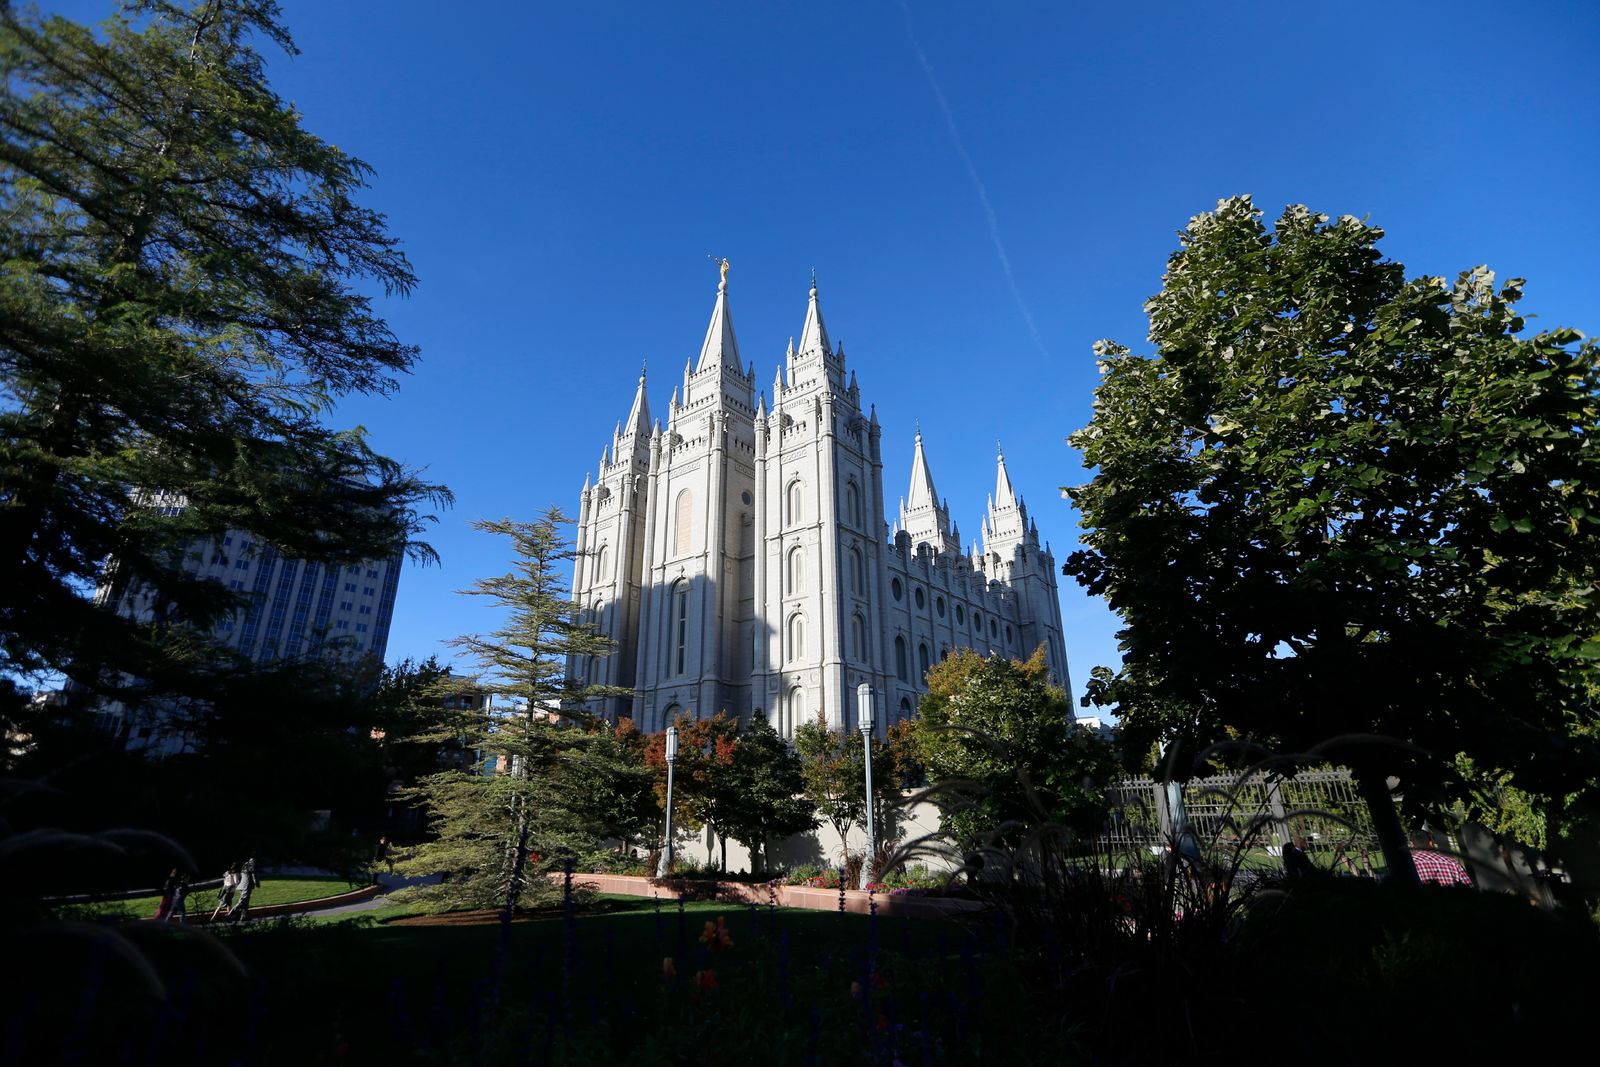 FILE - In this Oct. 5, 2019, file photo, the Salt Lake Temple of the Church of Jesus Christ of Latter-Day Saints is shown in Salt Lake City. The discredited practice of conversion therapy for LGBTQ children is now banned in Utah, making it the 19th state and one of the most conservative to prohibit it. (AP Photo/Rick Bowmer, File)